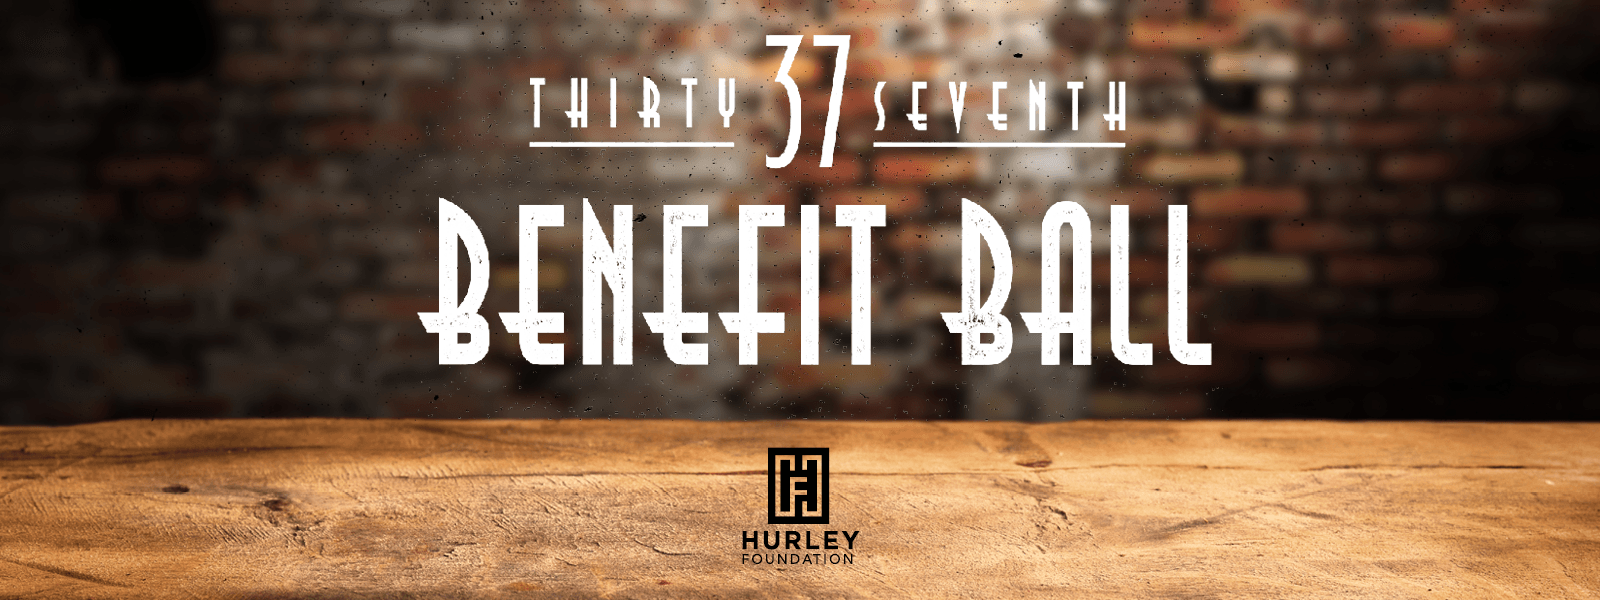 Hurley Benefit Ball